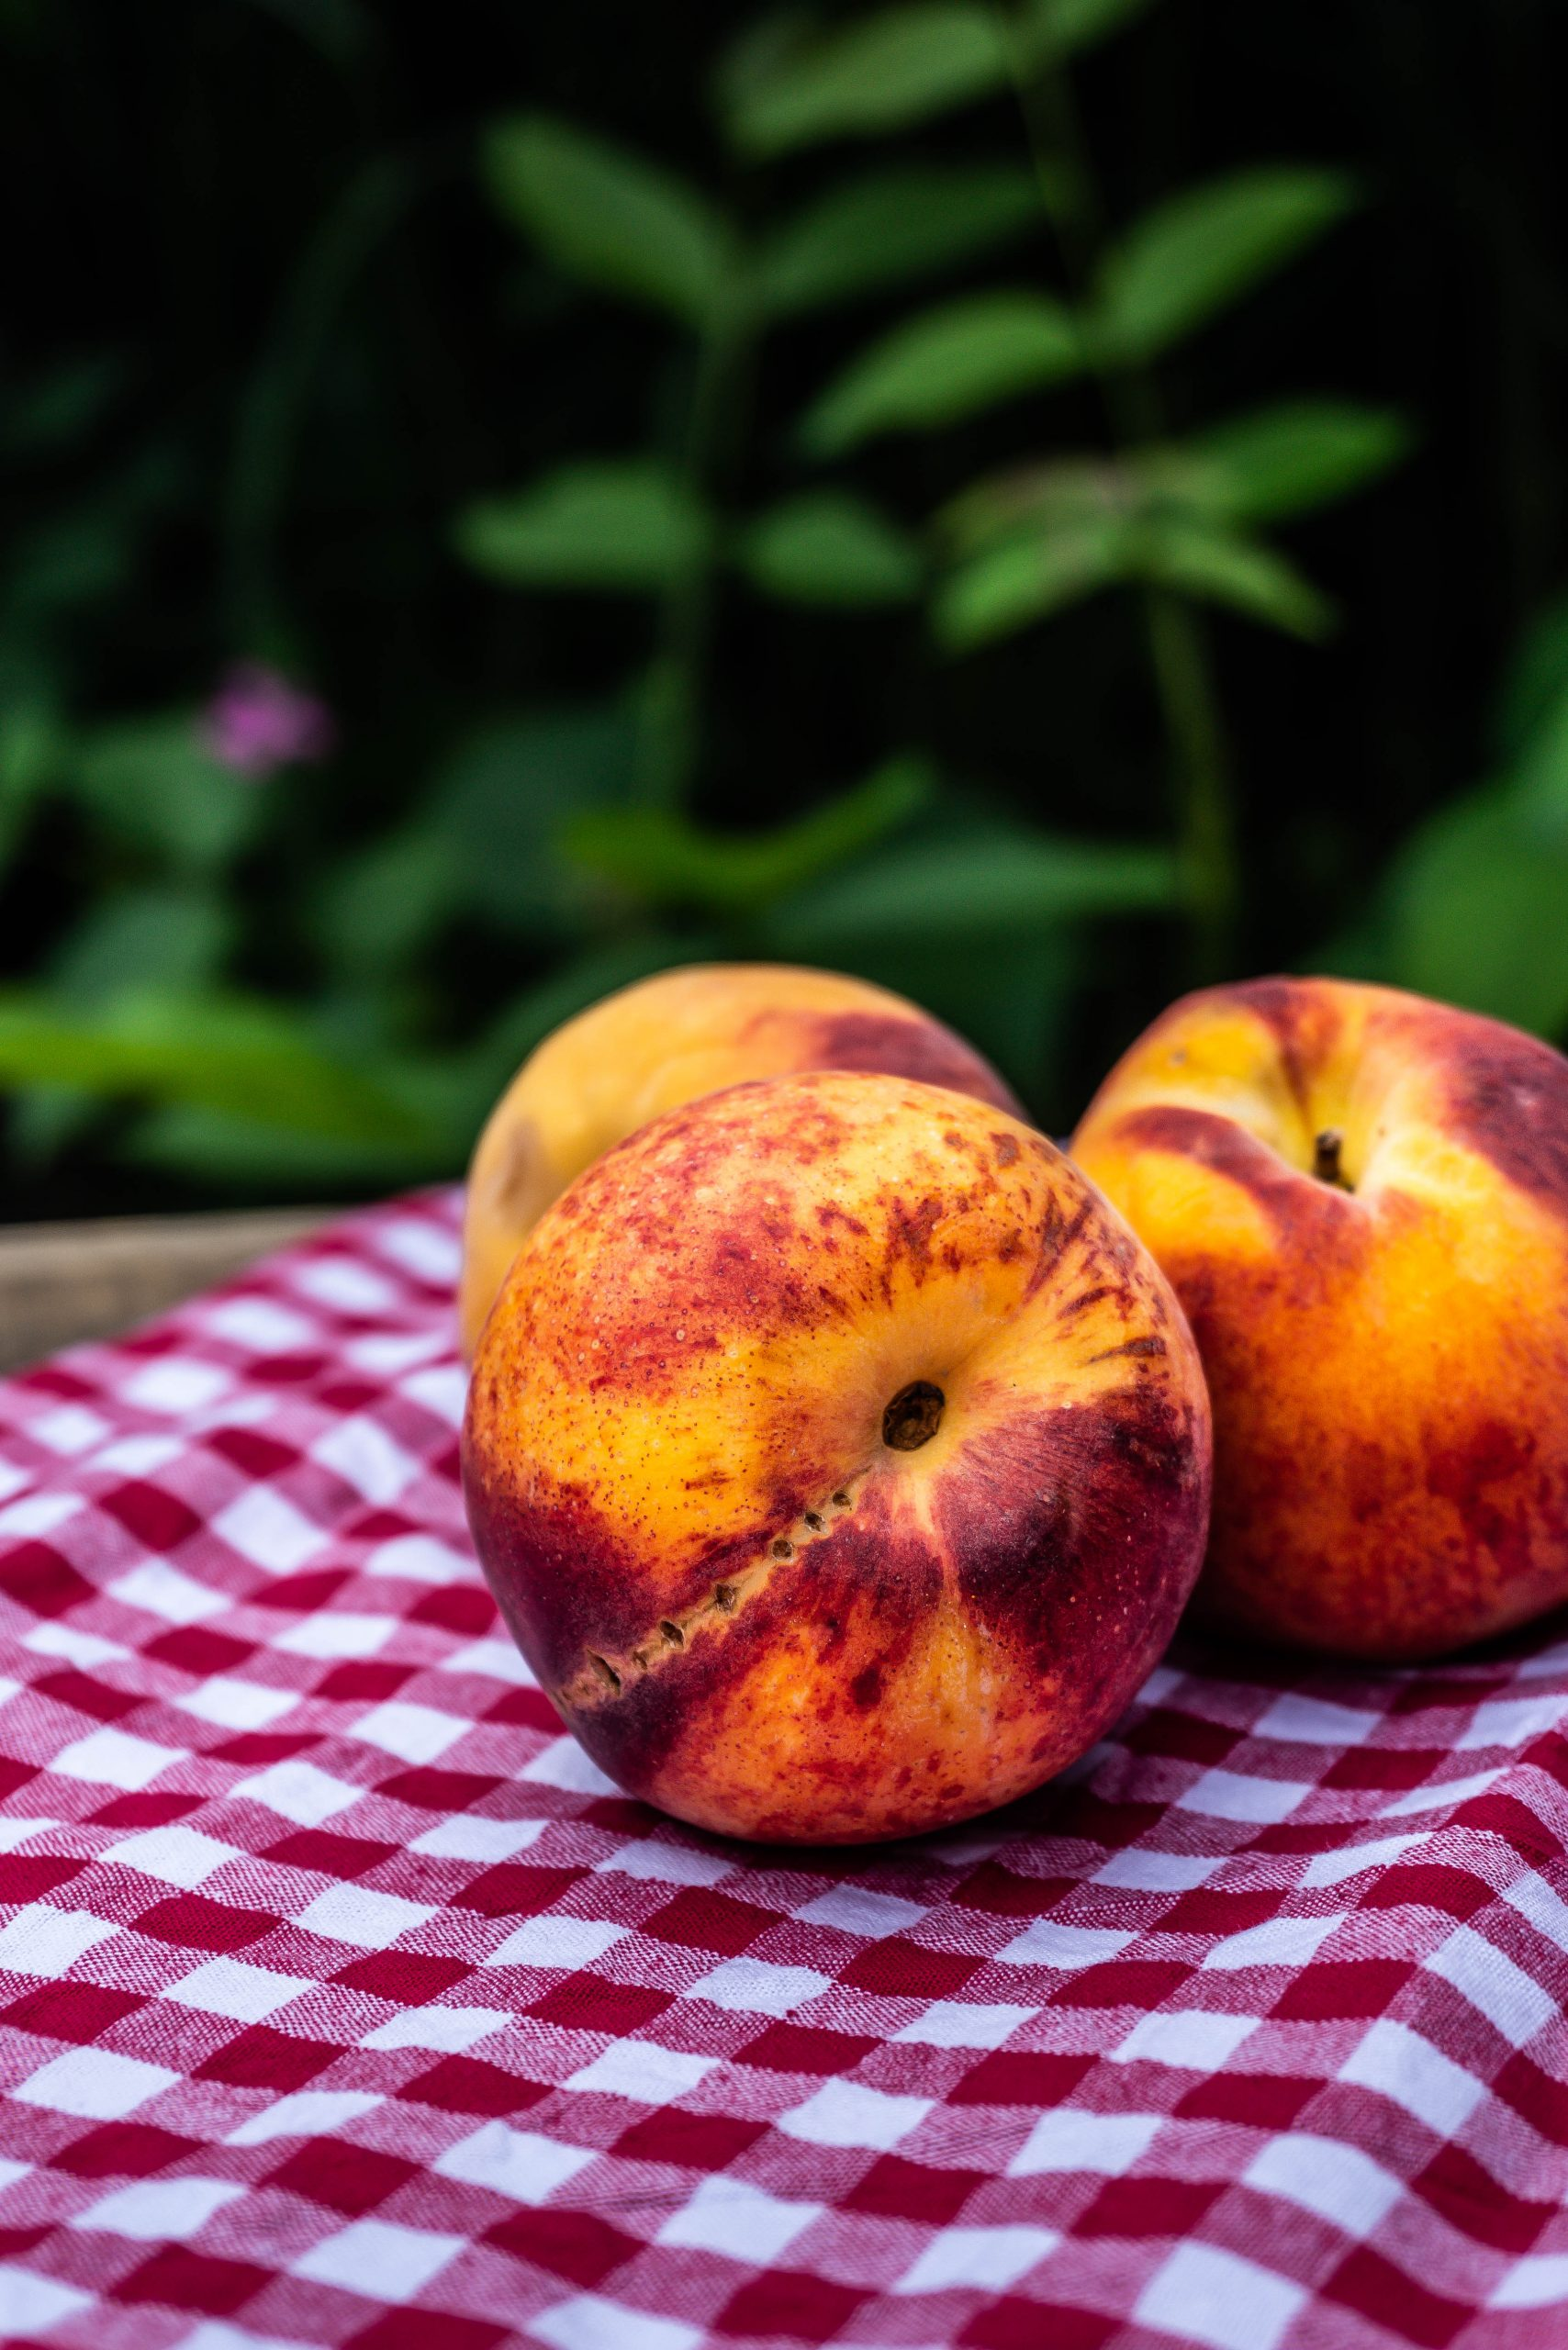 Peaches on a red tablecloth with green in the background